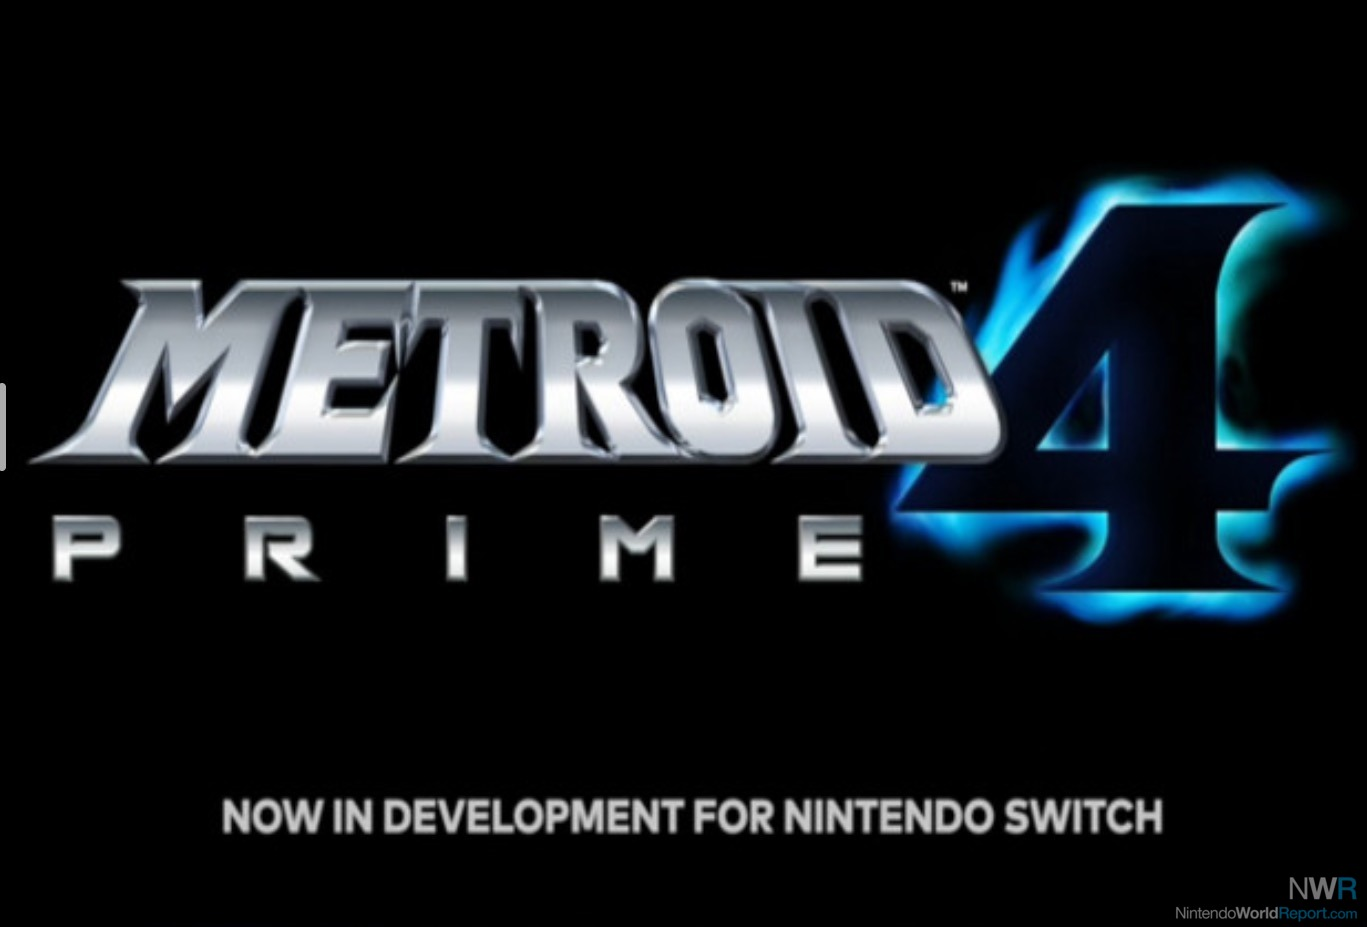 Nintendo to hit the reset button on Metroid Prime 4